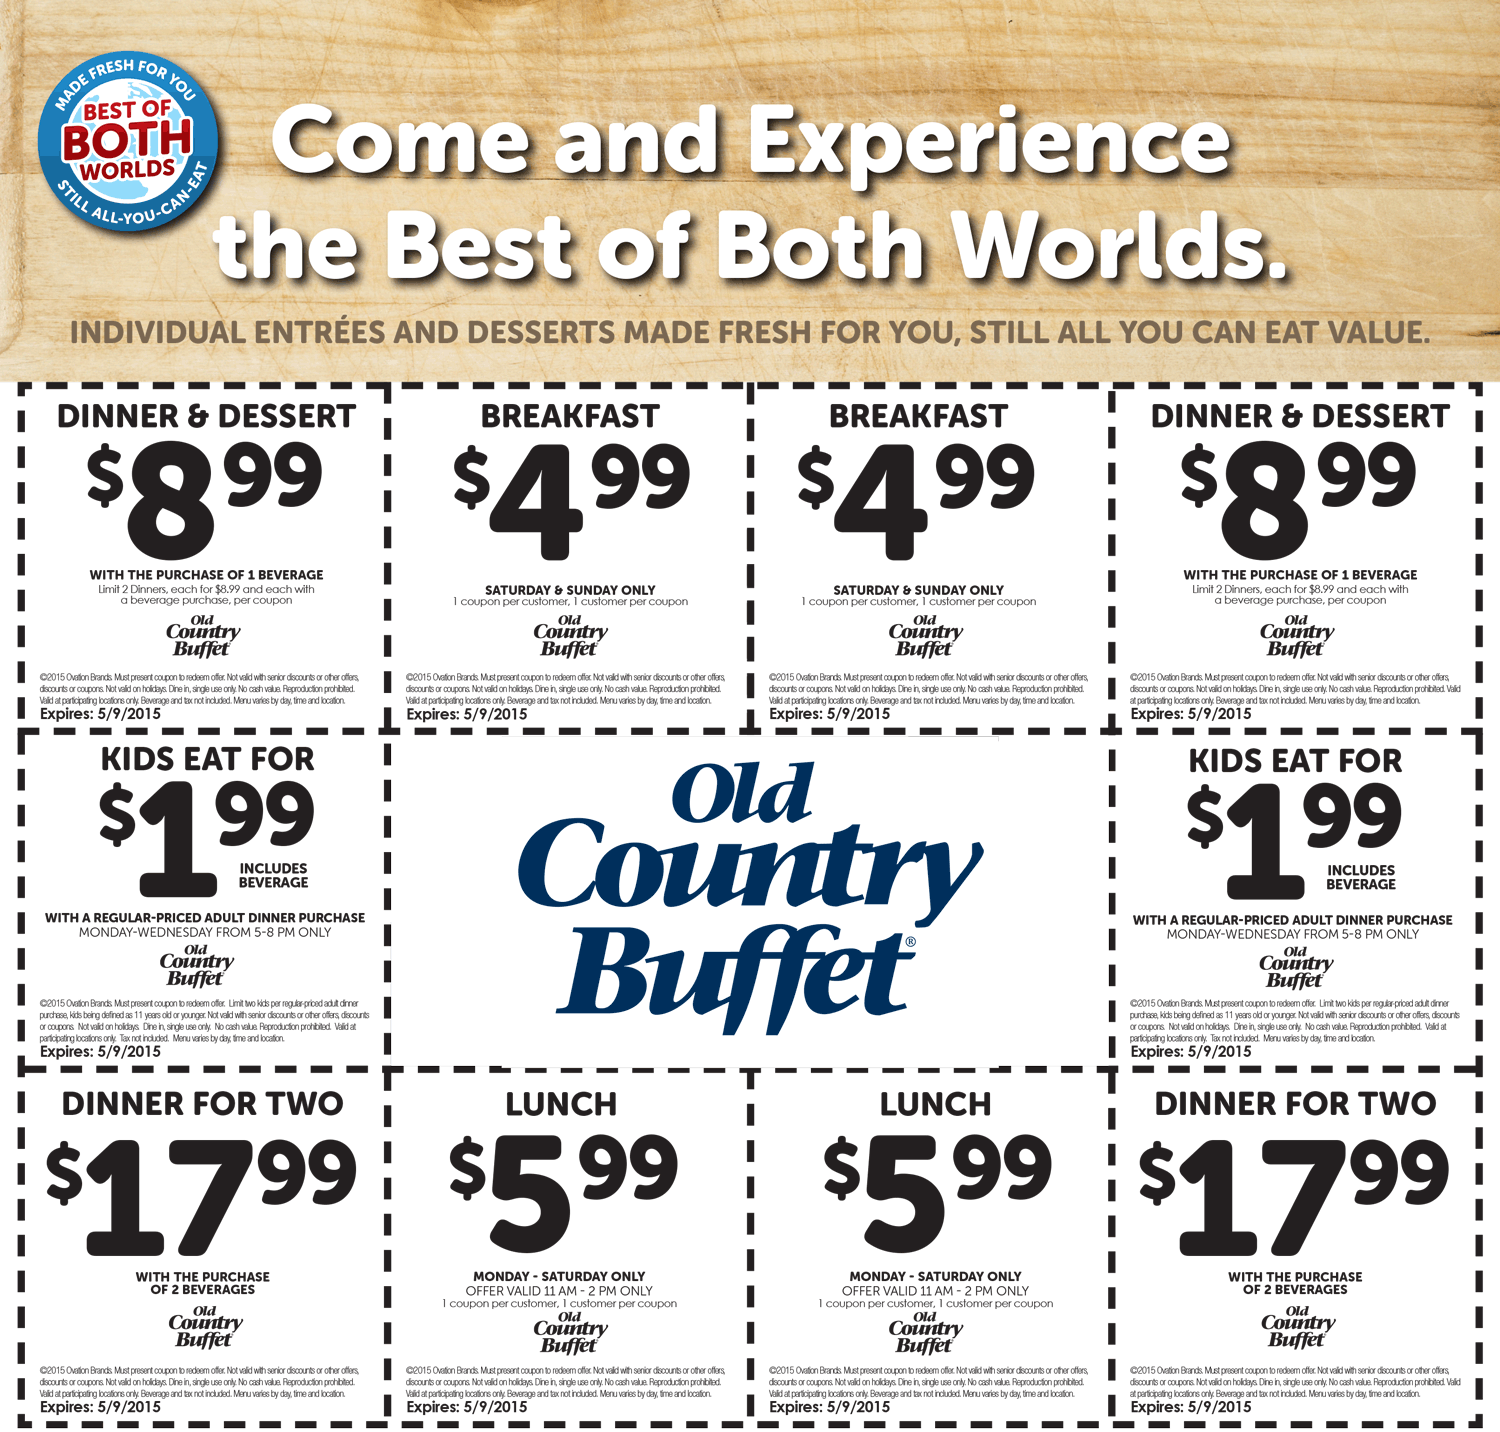 How can you save money with printable hibbett sports coupons 10 - Old Country Buffet Bogo 2 Buffet Printable Coupon Http Www Pinterest Com Annacoupons Old Country Buffet Coupons Old Country Buffet Coupons